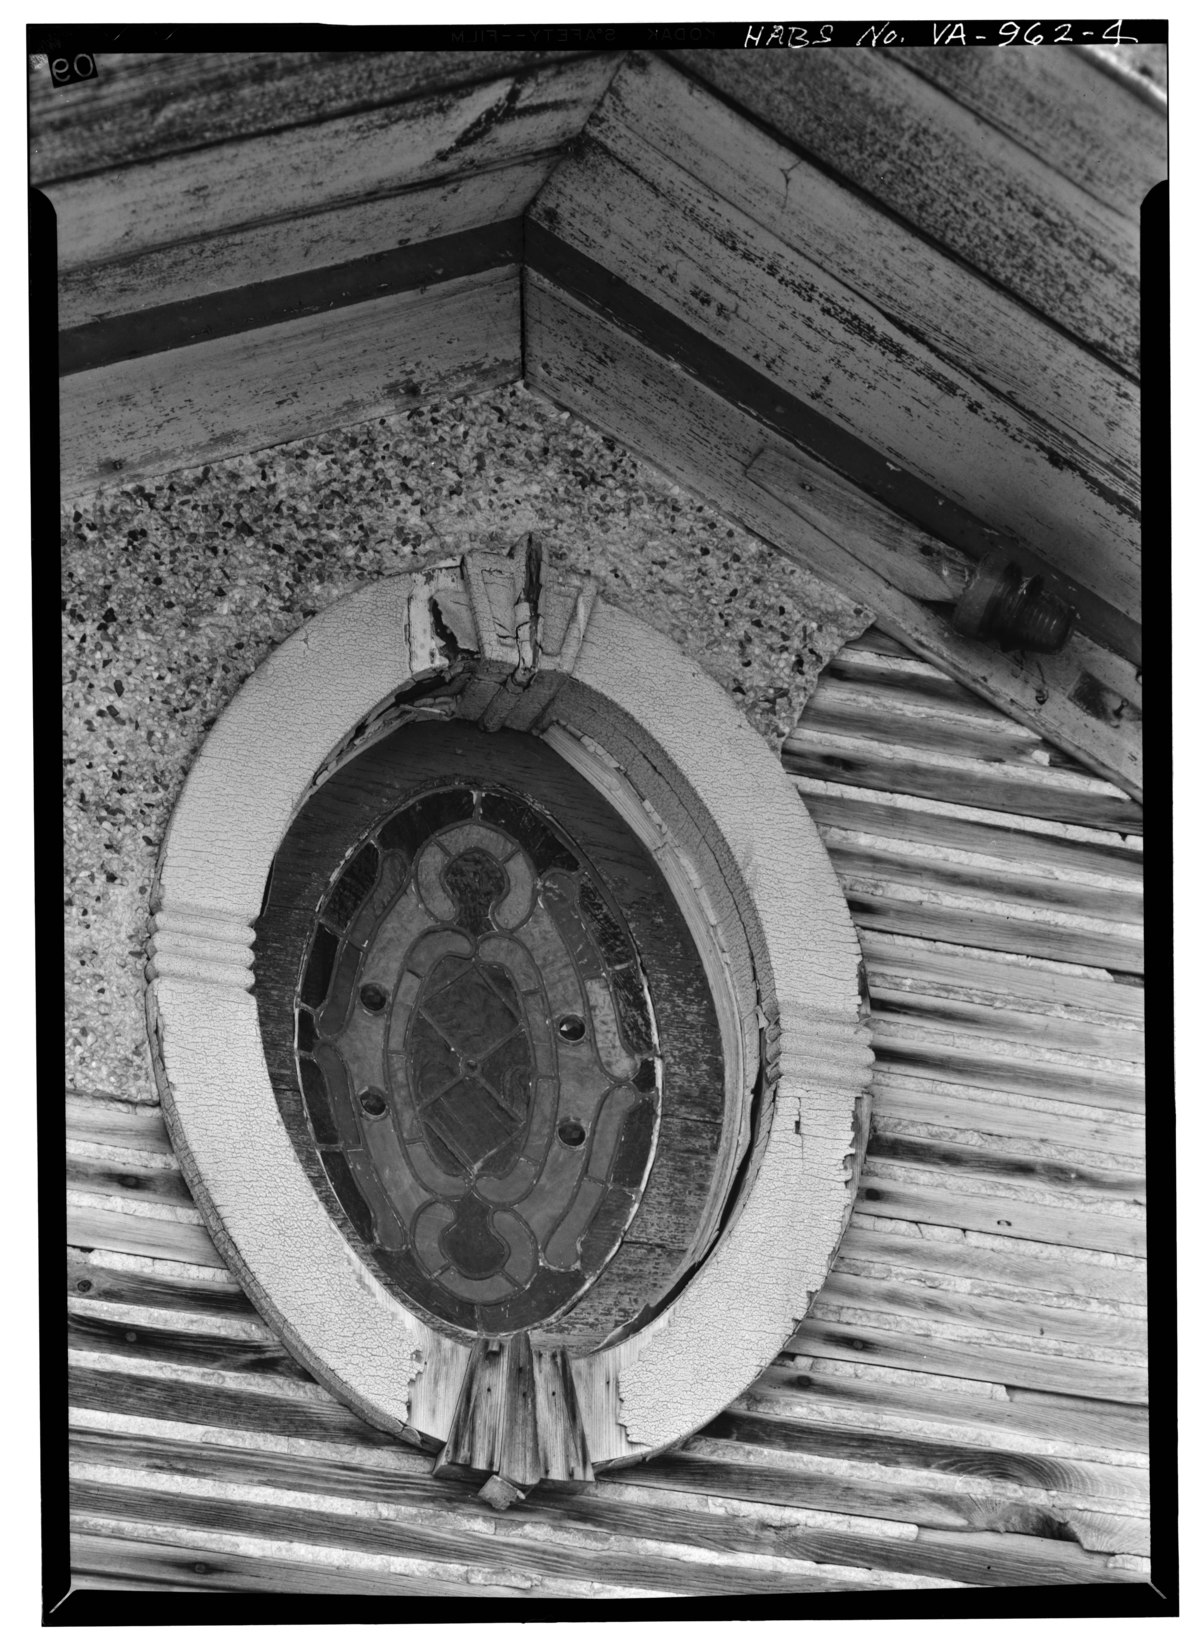 File Detail Showing Stained Glass Window In Pediment